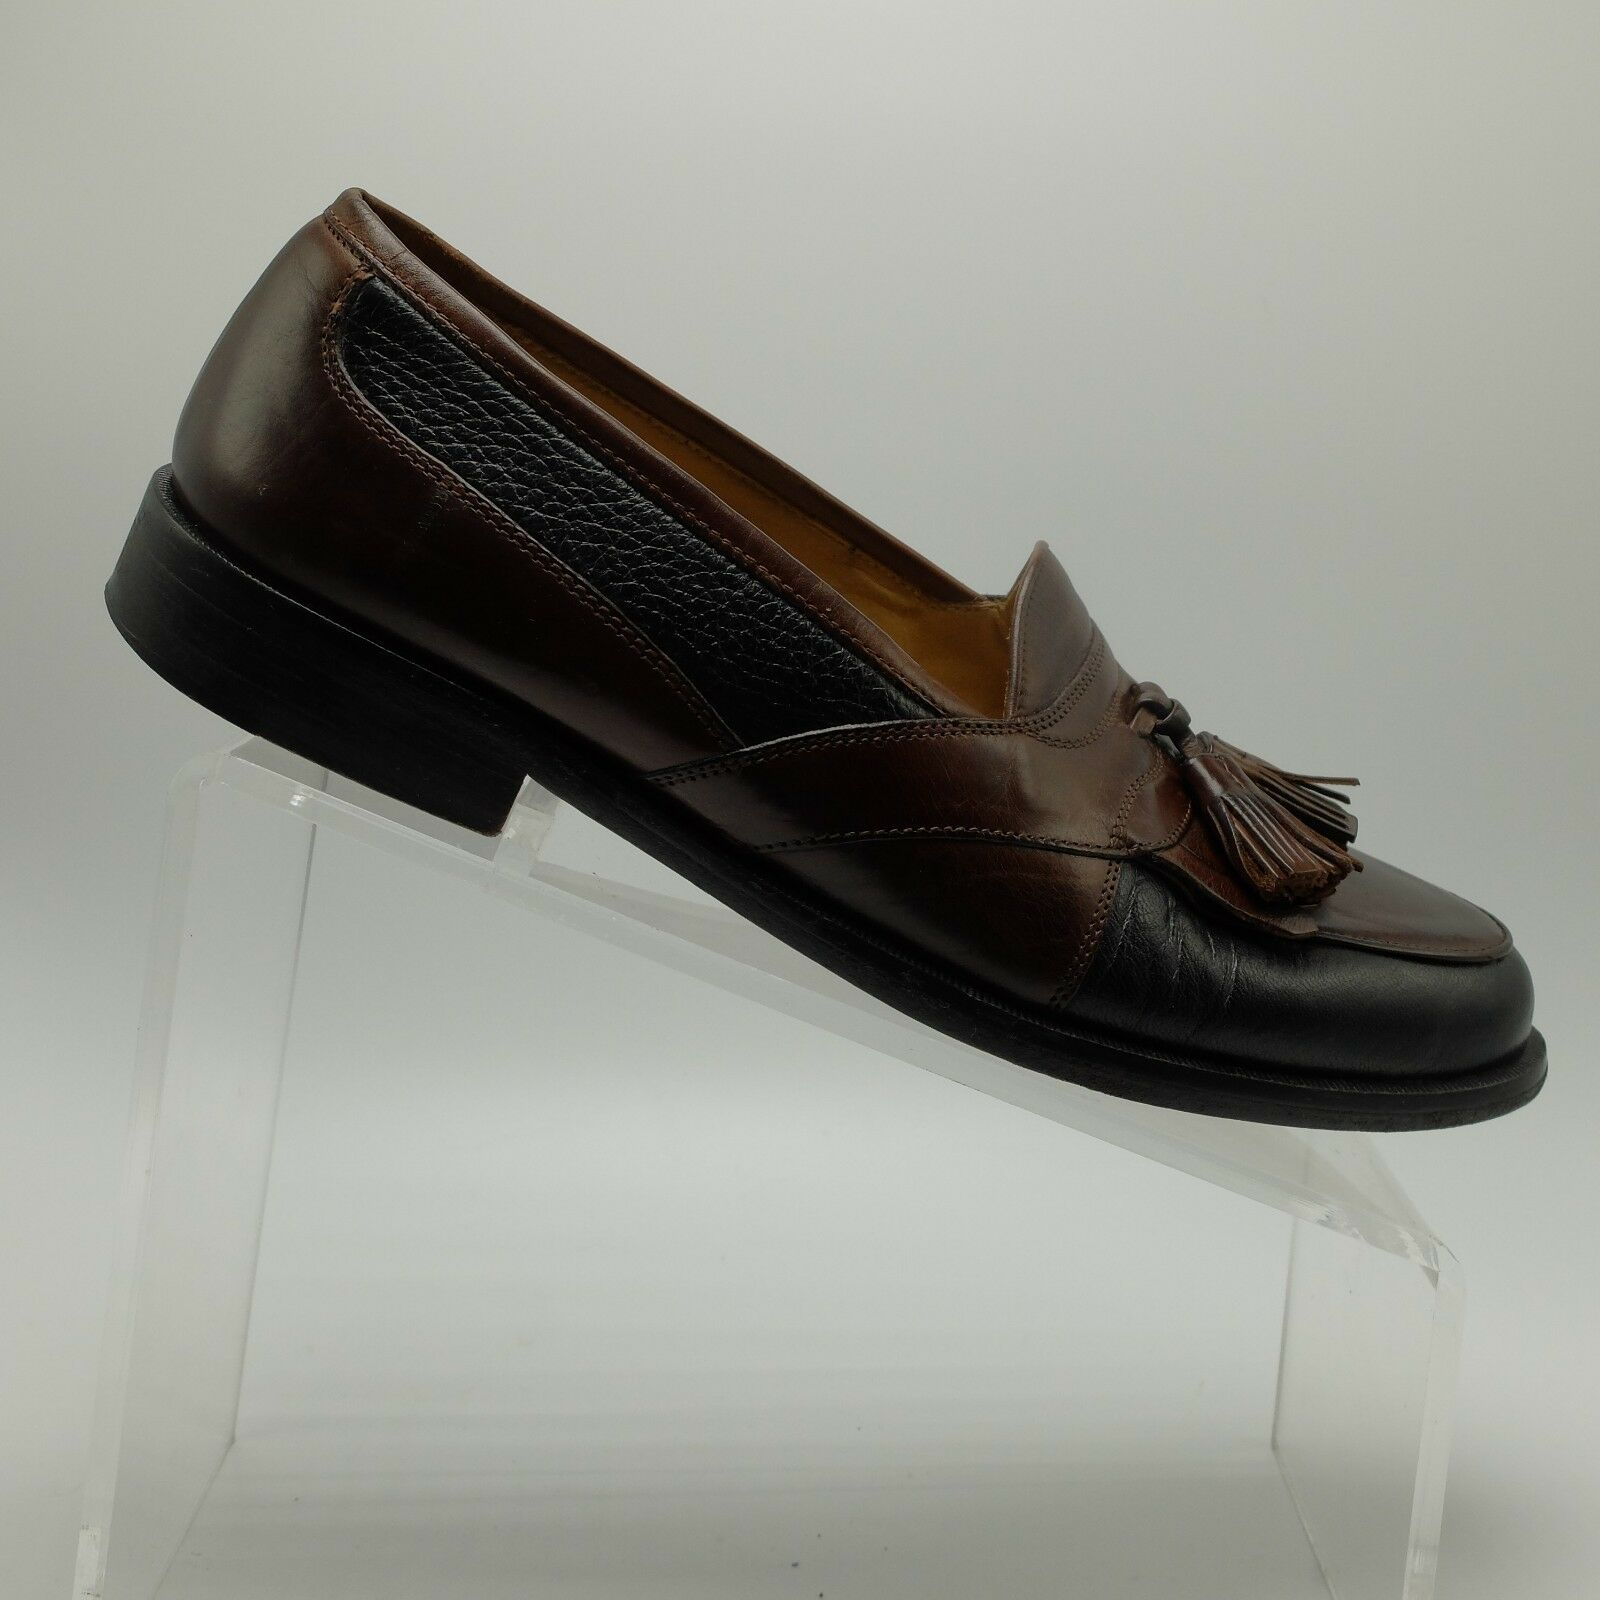 Johnston & Murphy Mens Tassel Two-Tone Black Brown Leather Loafer shoes Size 8 D